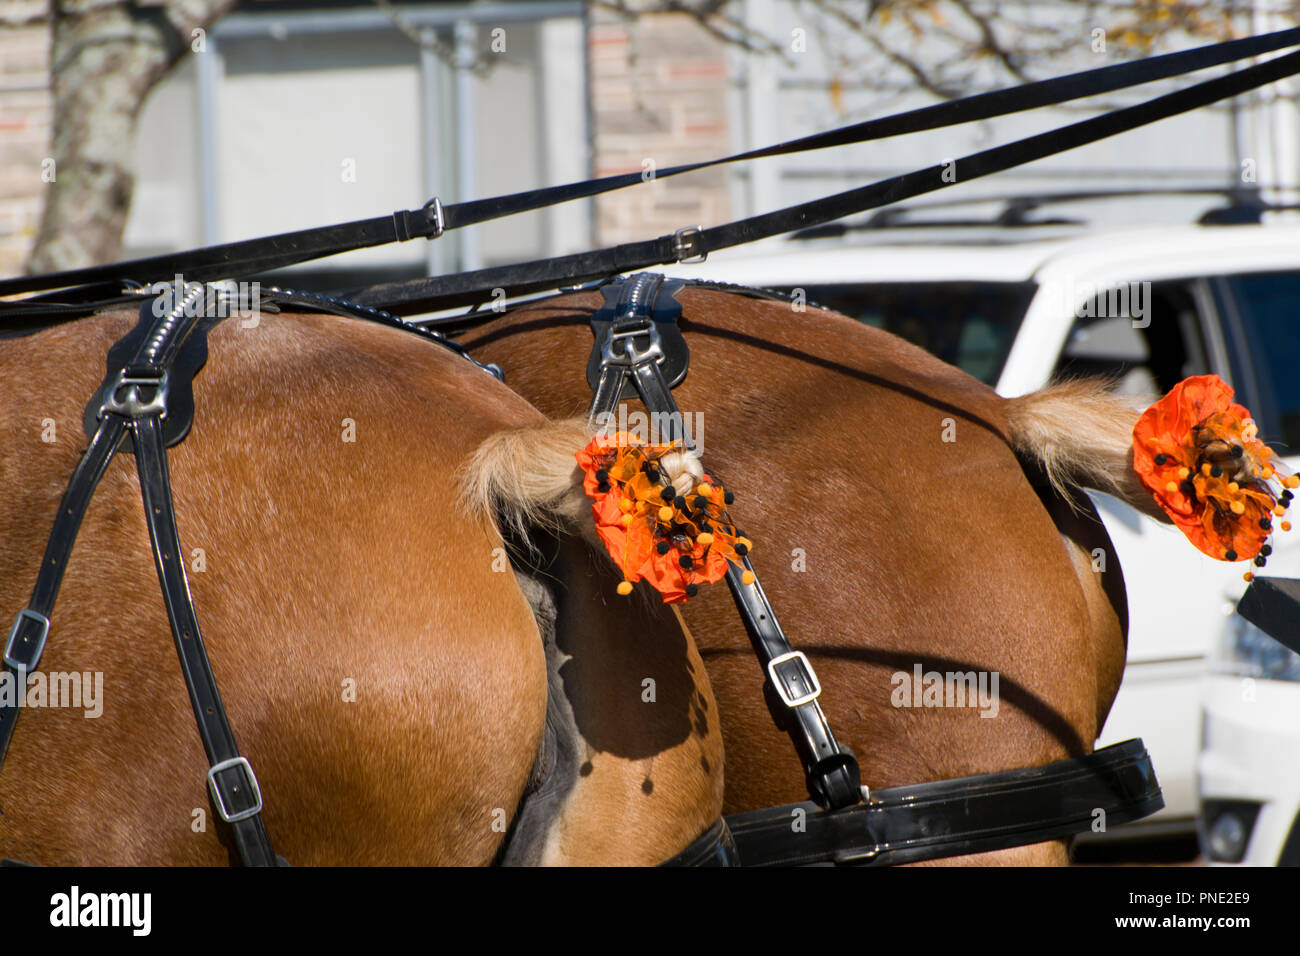 Horses Tail Decorated In Orange And Black Stock Photo Alamy